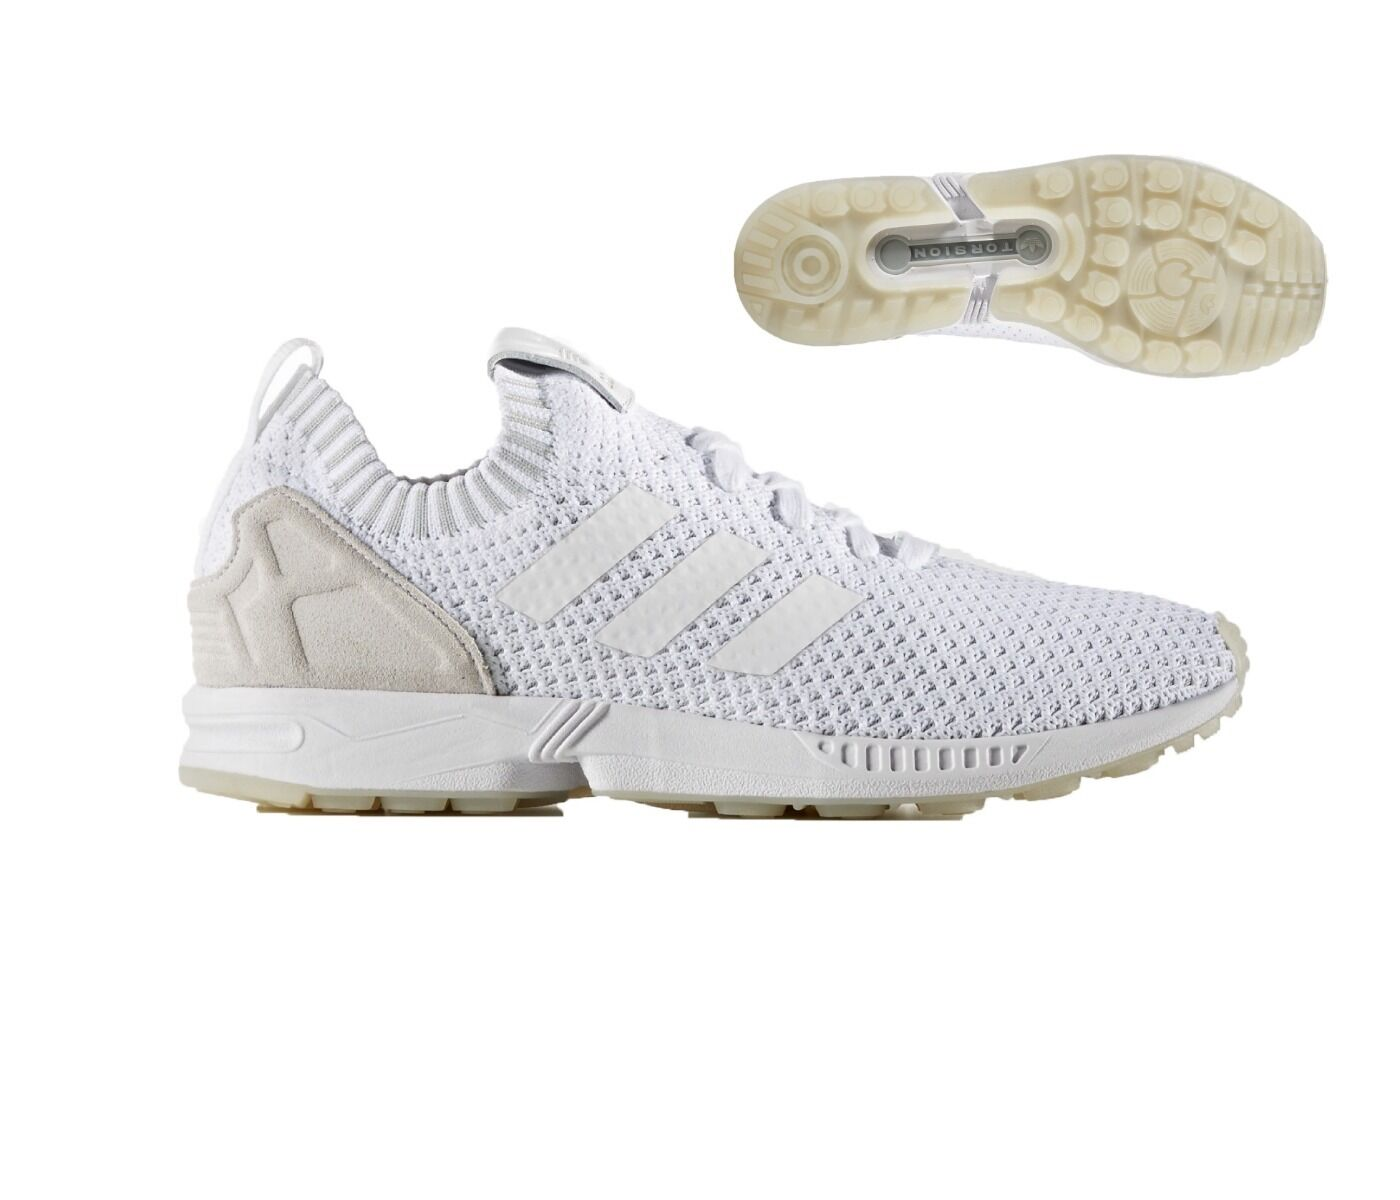 Adidas ZX FLUX Pack 7.511.5 Hombre Running Zapatillas número 7.511.5 Pack blanco NUEVO f1b92d